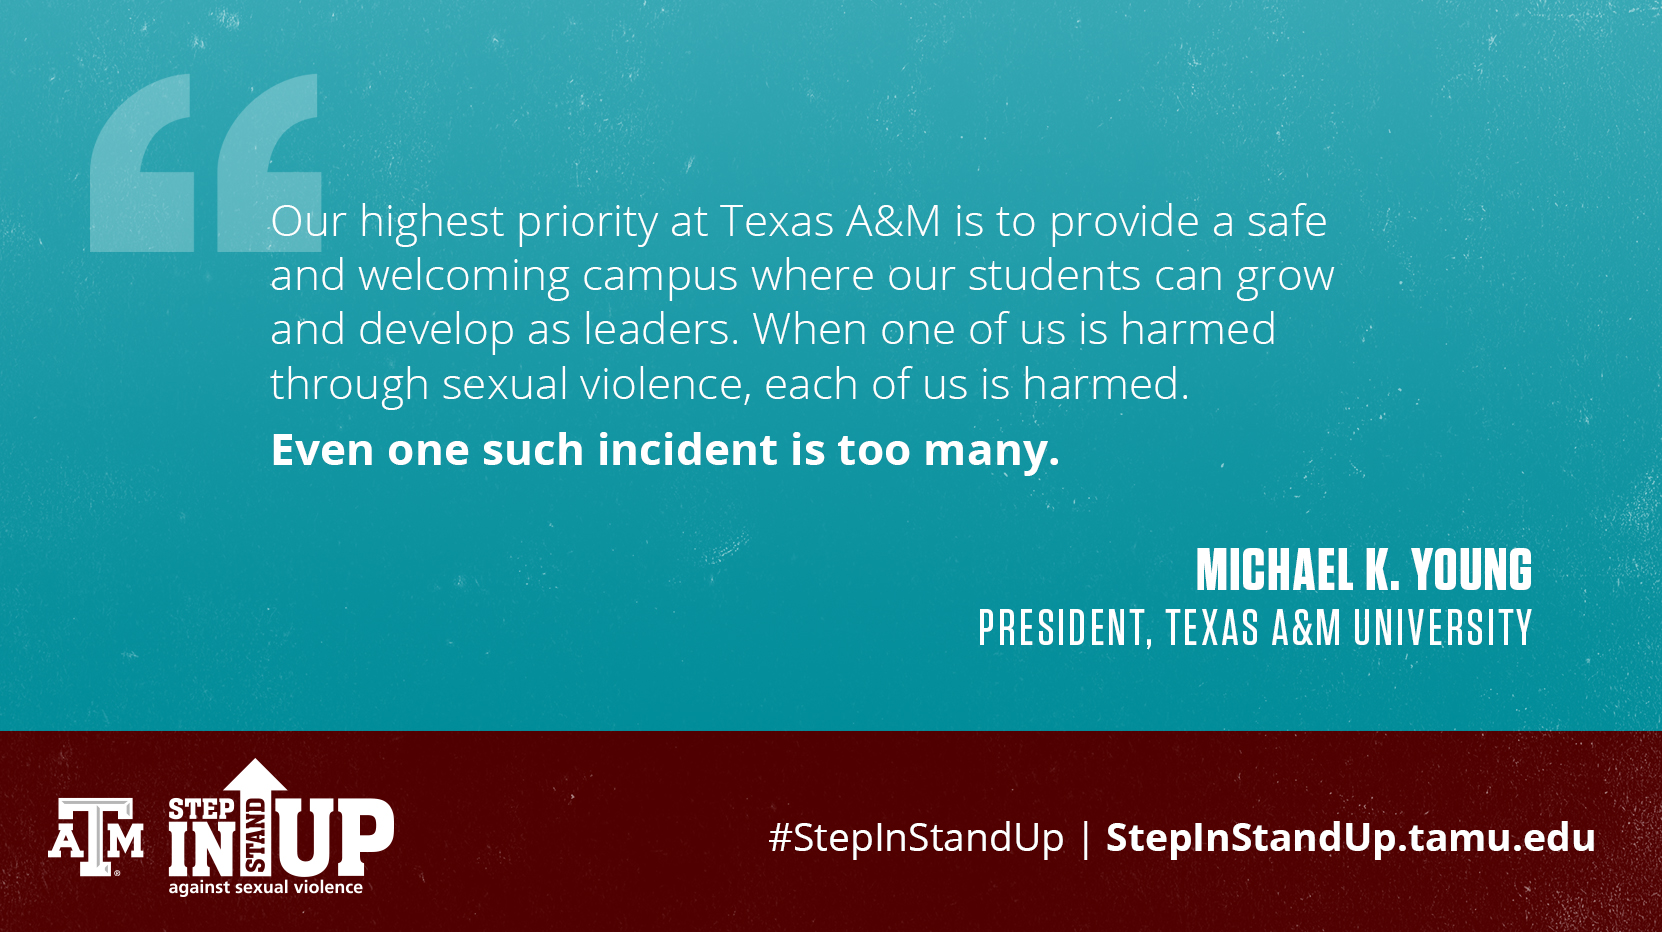 Our highest priority at Texas A&M is to provide a safe and welcoming campus where our students can grow and develop as leaders. When one of us is harmed through sexual violence, each of us is harmed. Even one such incident is too many. - Michael K. Young President, Texas A&M University